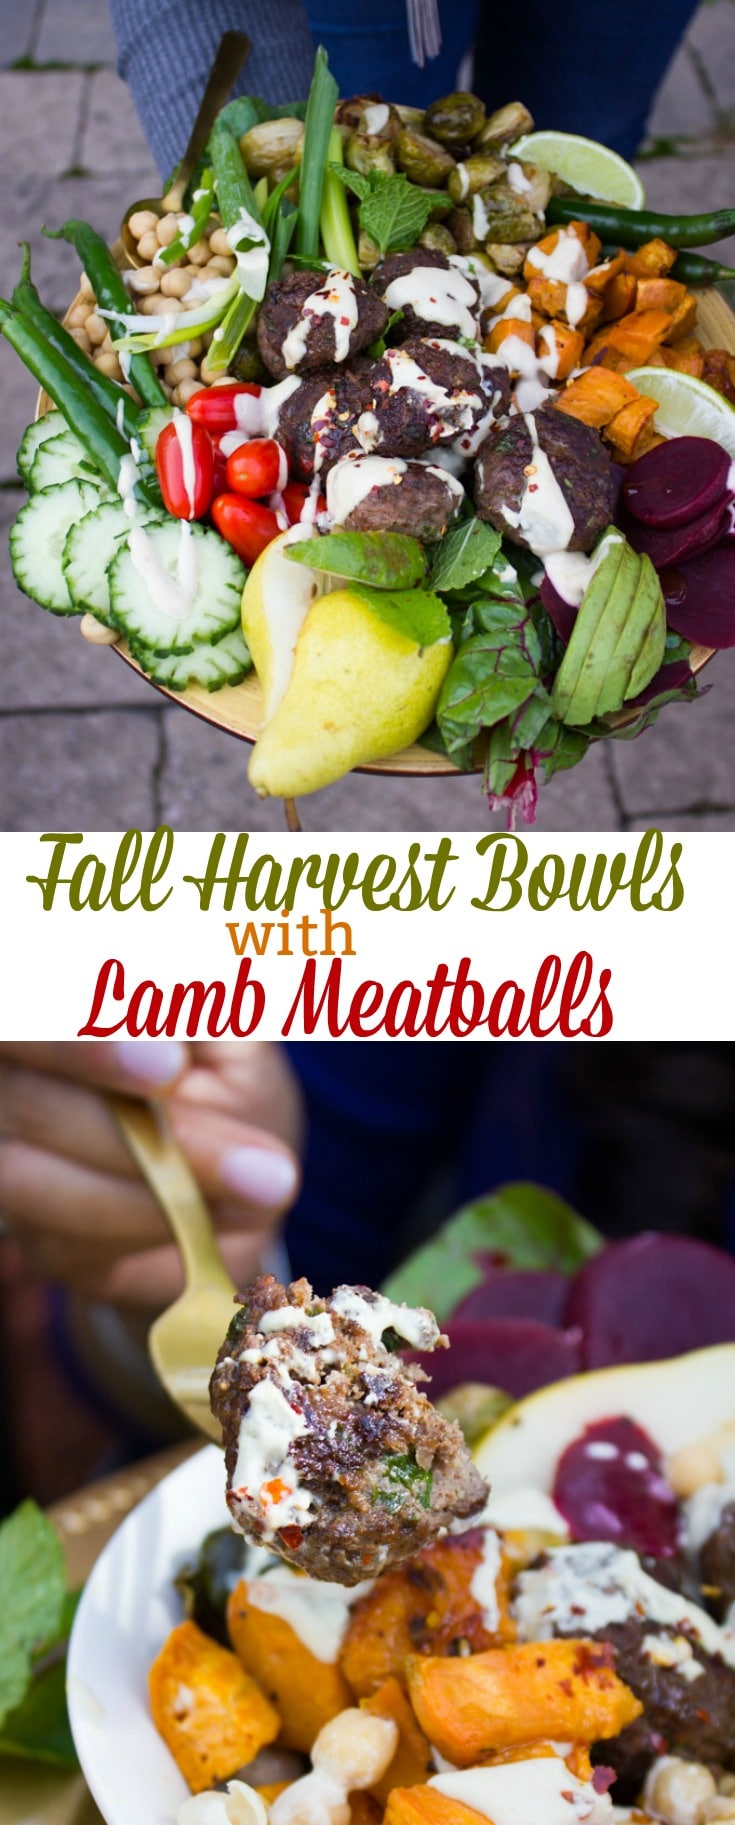 When you're planning a Fall brunch, this Fall Harvest Bowl with Lamb Meatballs is the perfect one! Spicy succulent lamb meatballs, perfectly roasted tender Fall veggies, chickpeas and a luscious tahini sauce on top.